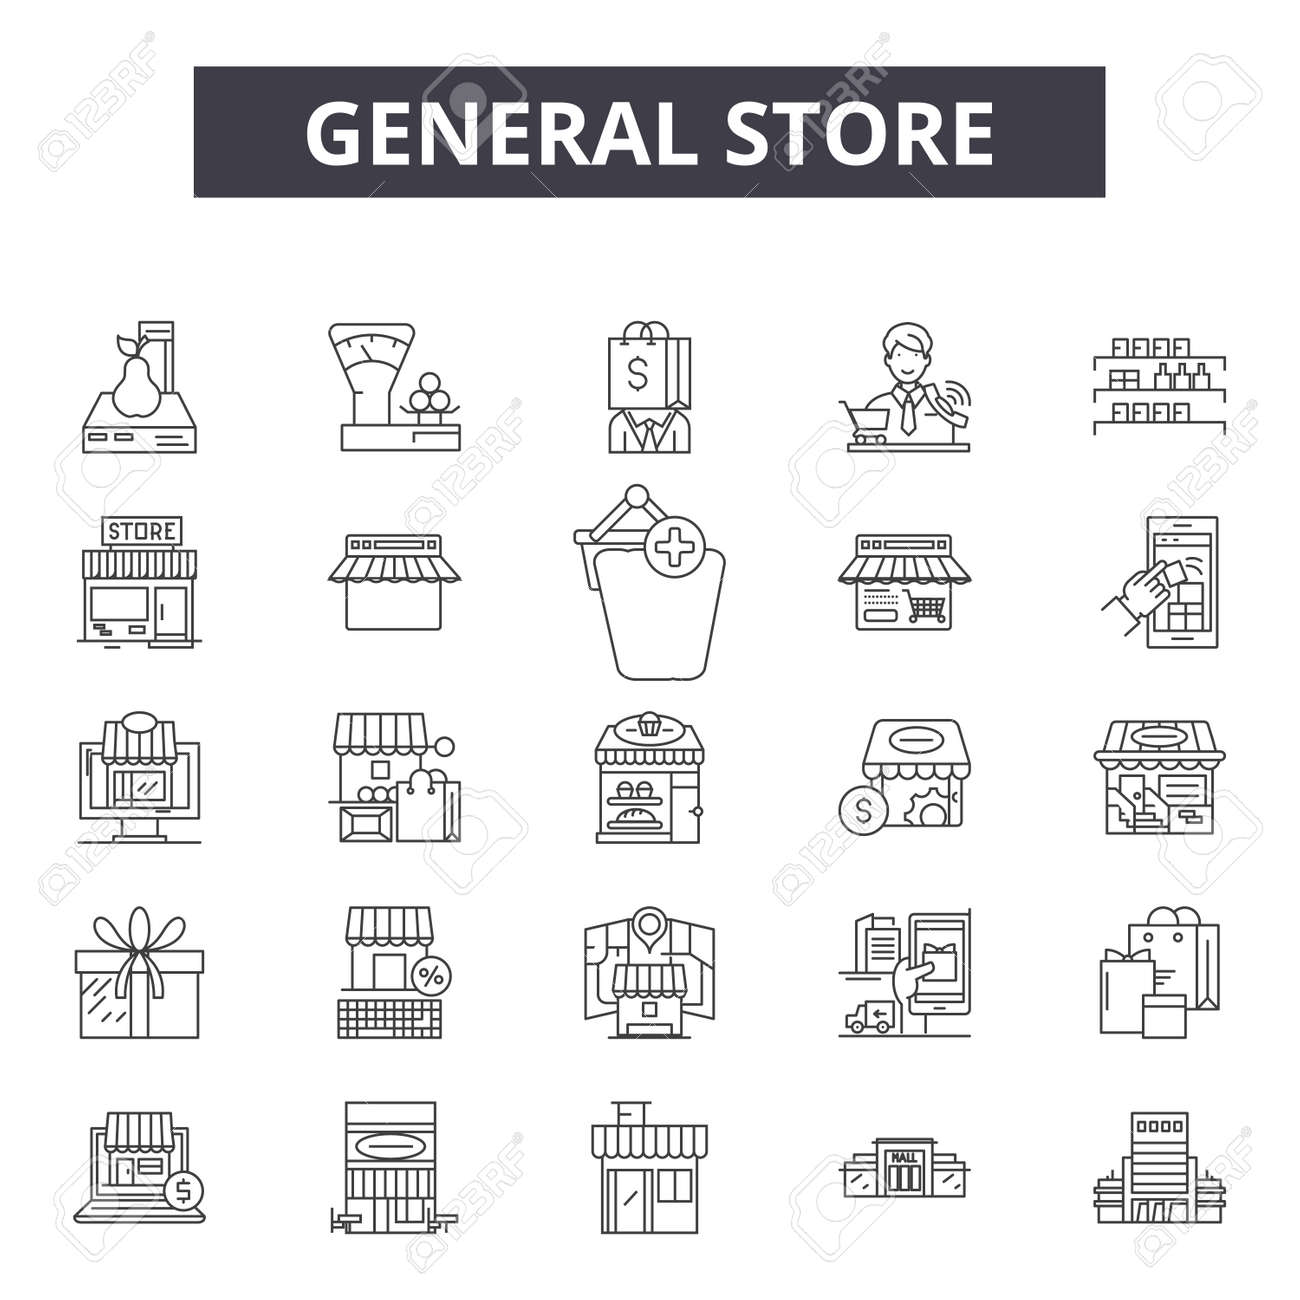 General store line icons, signs set, vector. General store outline concept illustration: store,shop,general,retail,business,web - 120895902